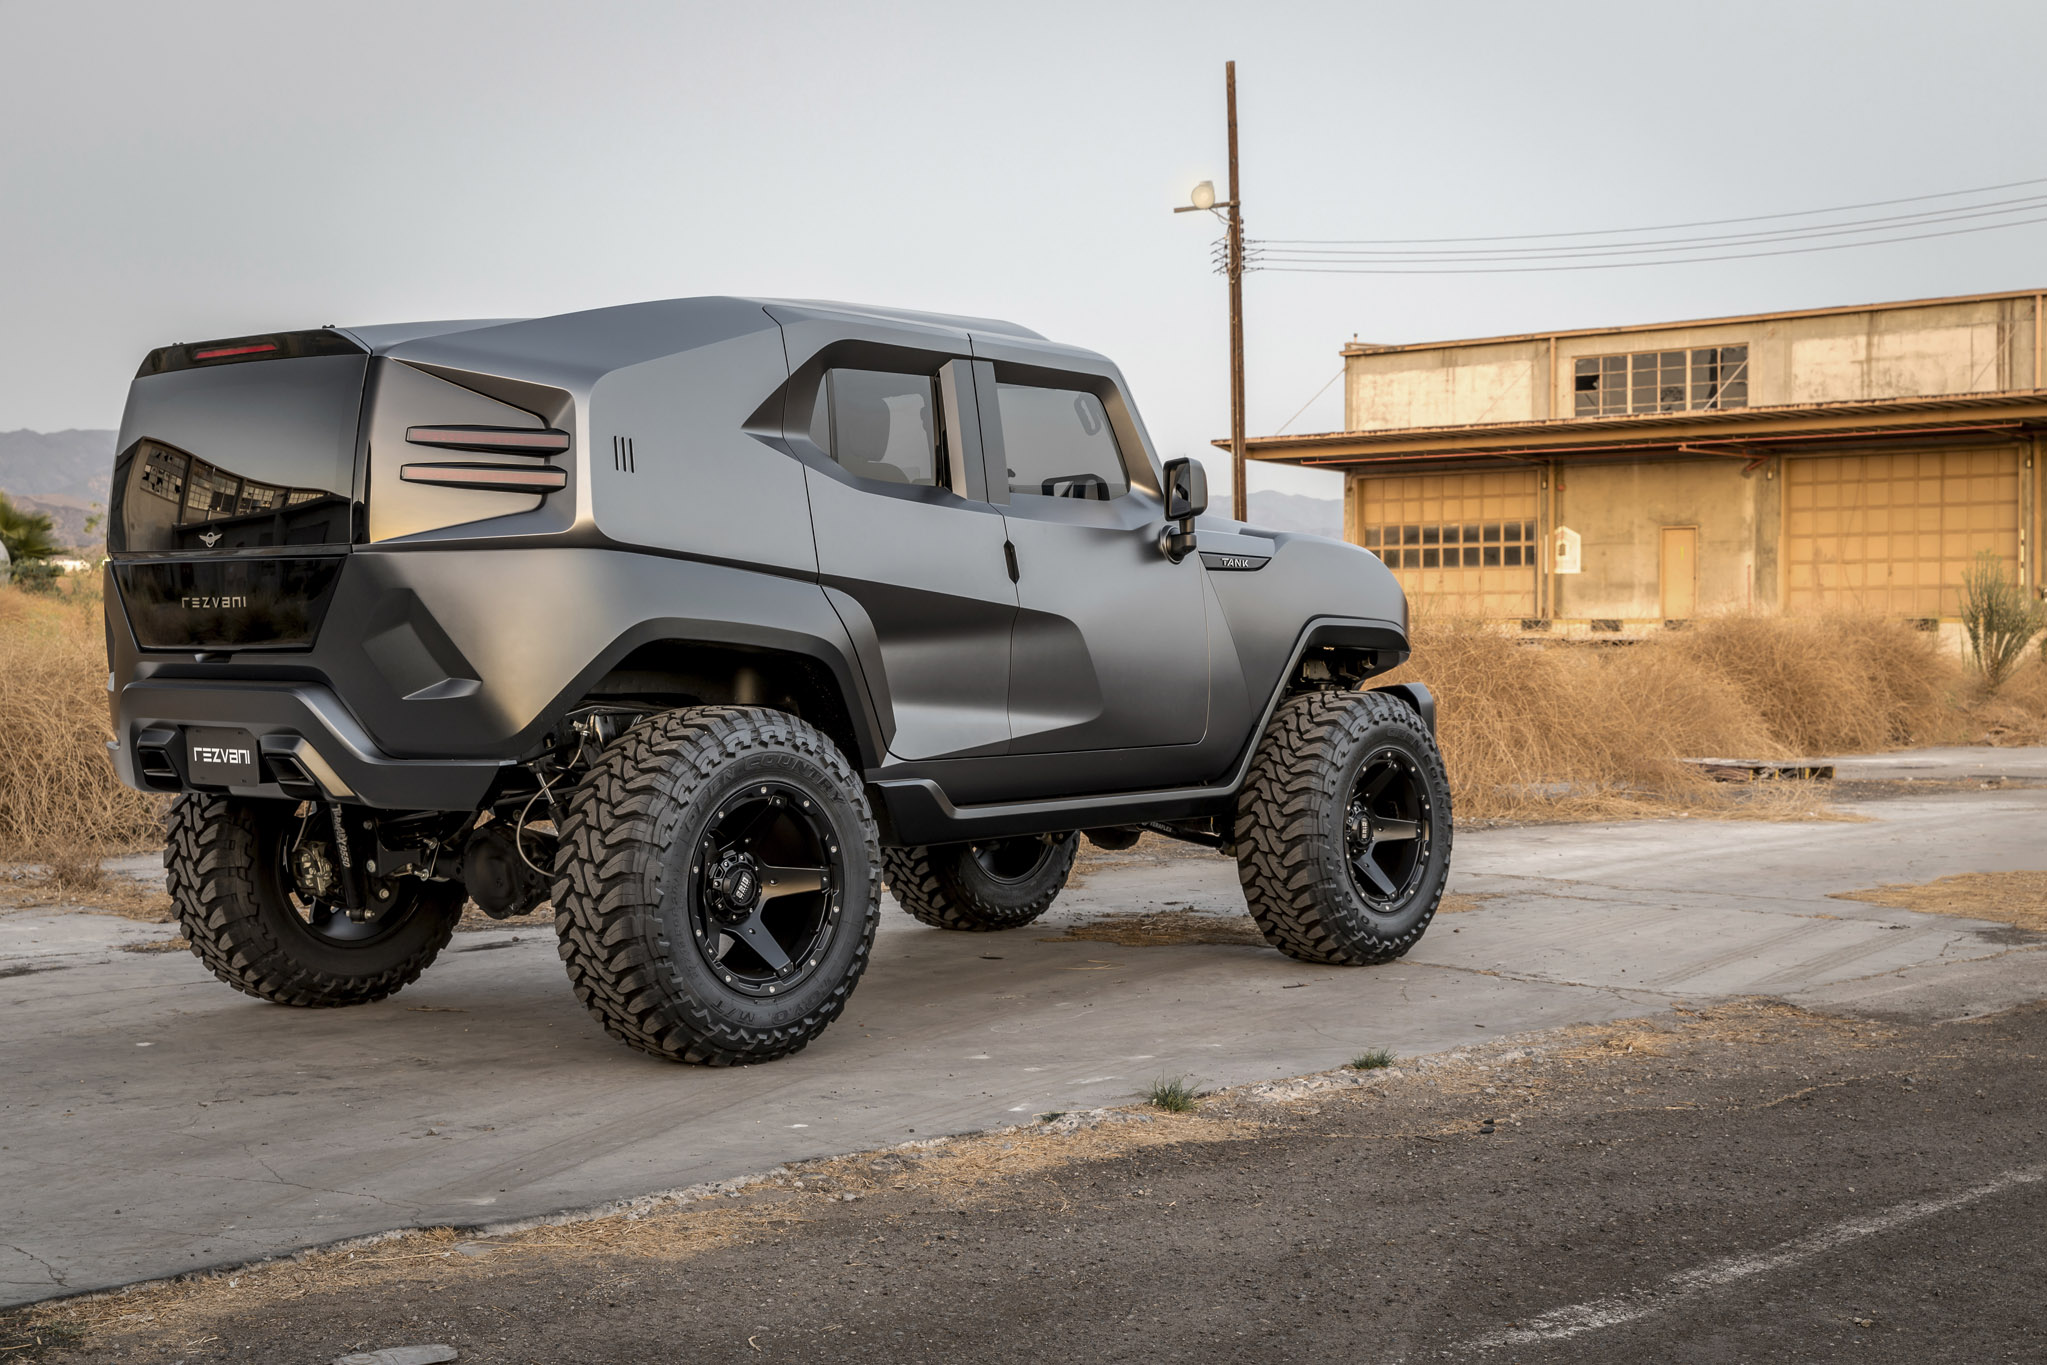 Rezvani Tank Rolls In With 500 Horsepower Automobile